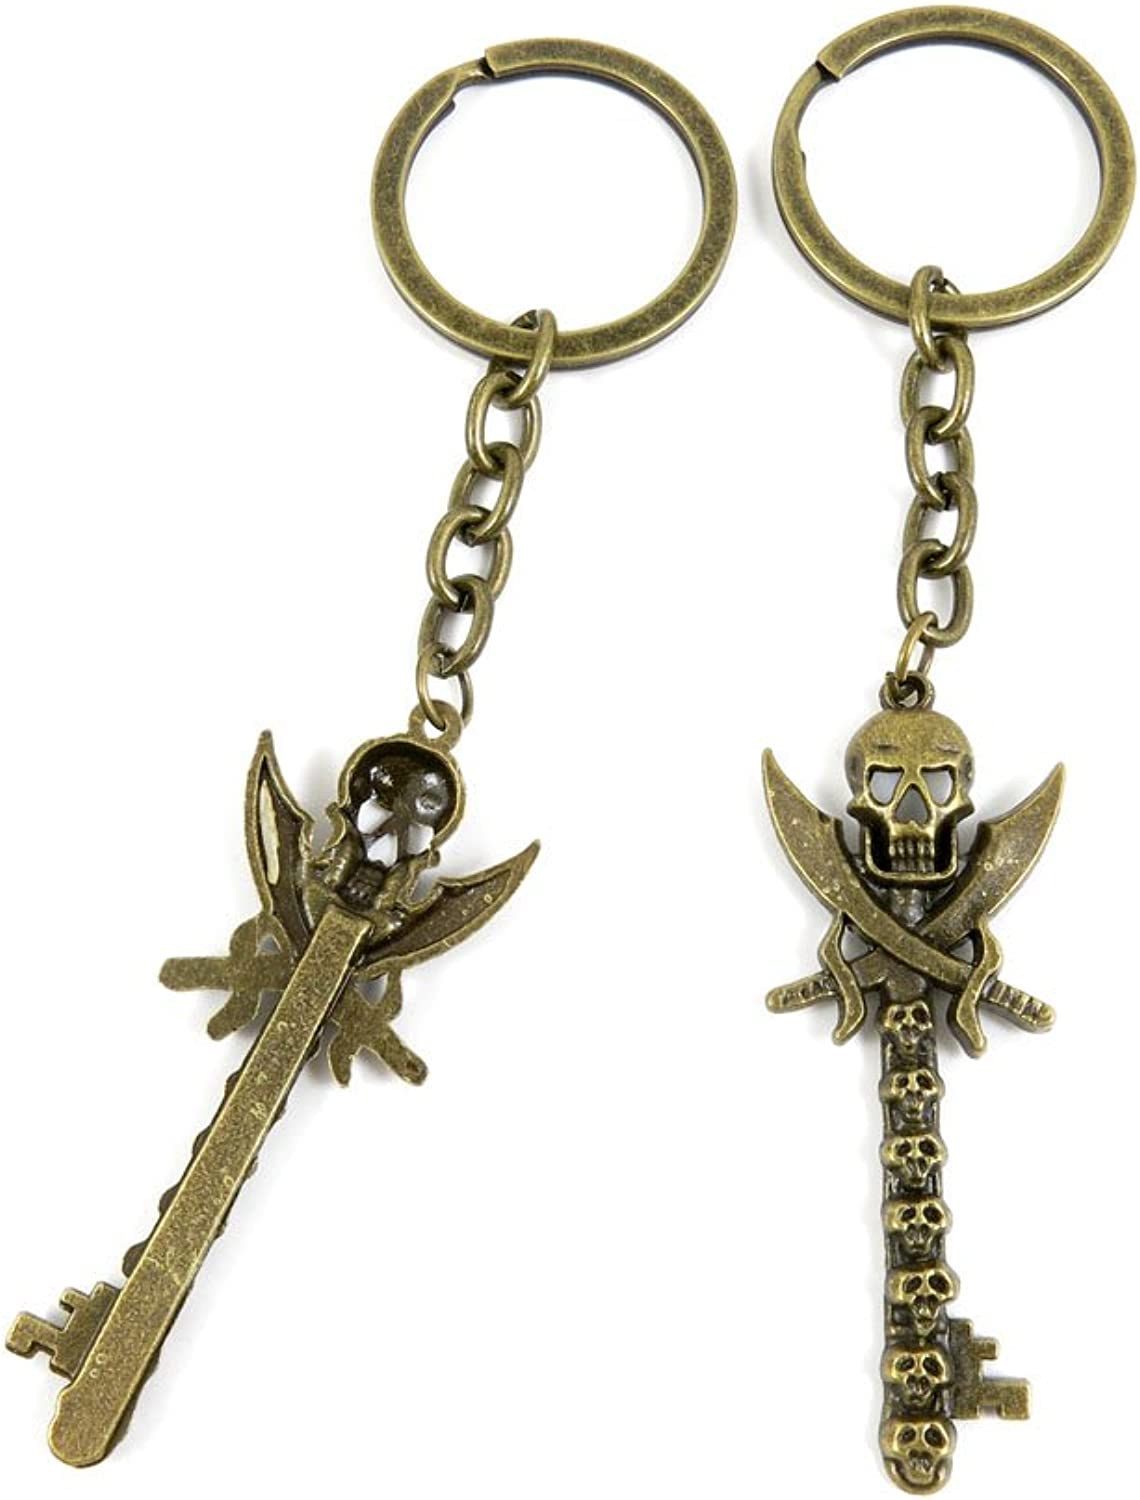 100 PCS Keyrings Keychains Key Ring Chains Tags Jewelry Findings Clasps Buckles Supplies B5MZ6 Pirate Skull Key